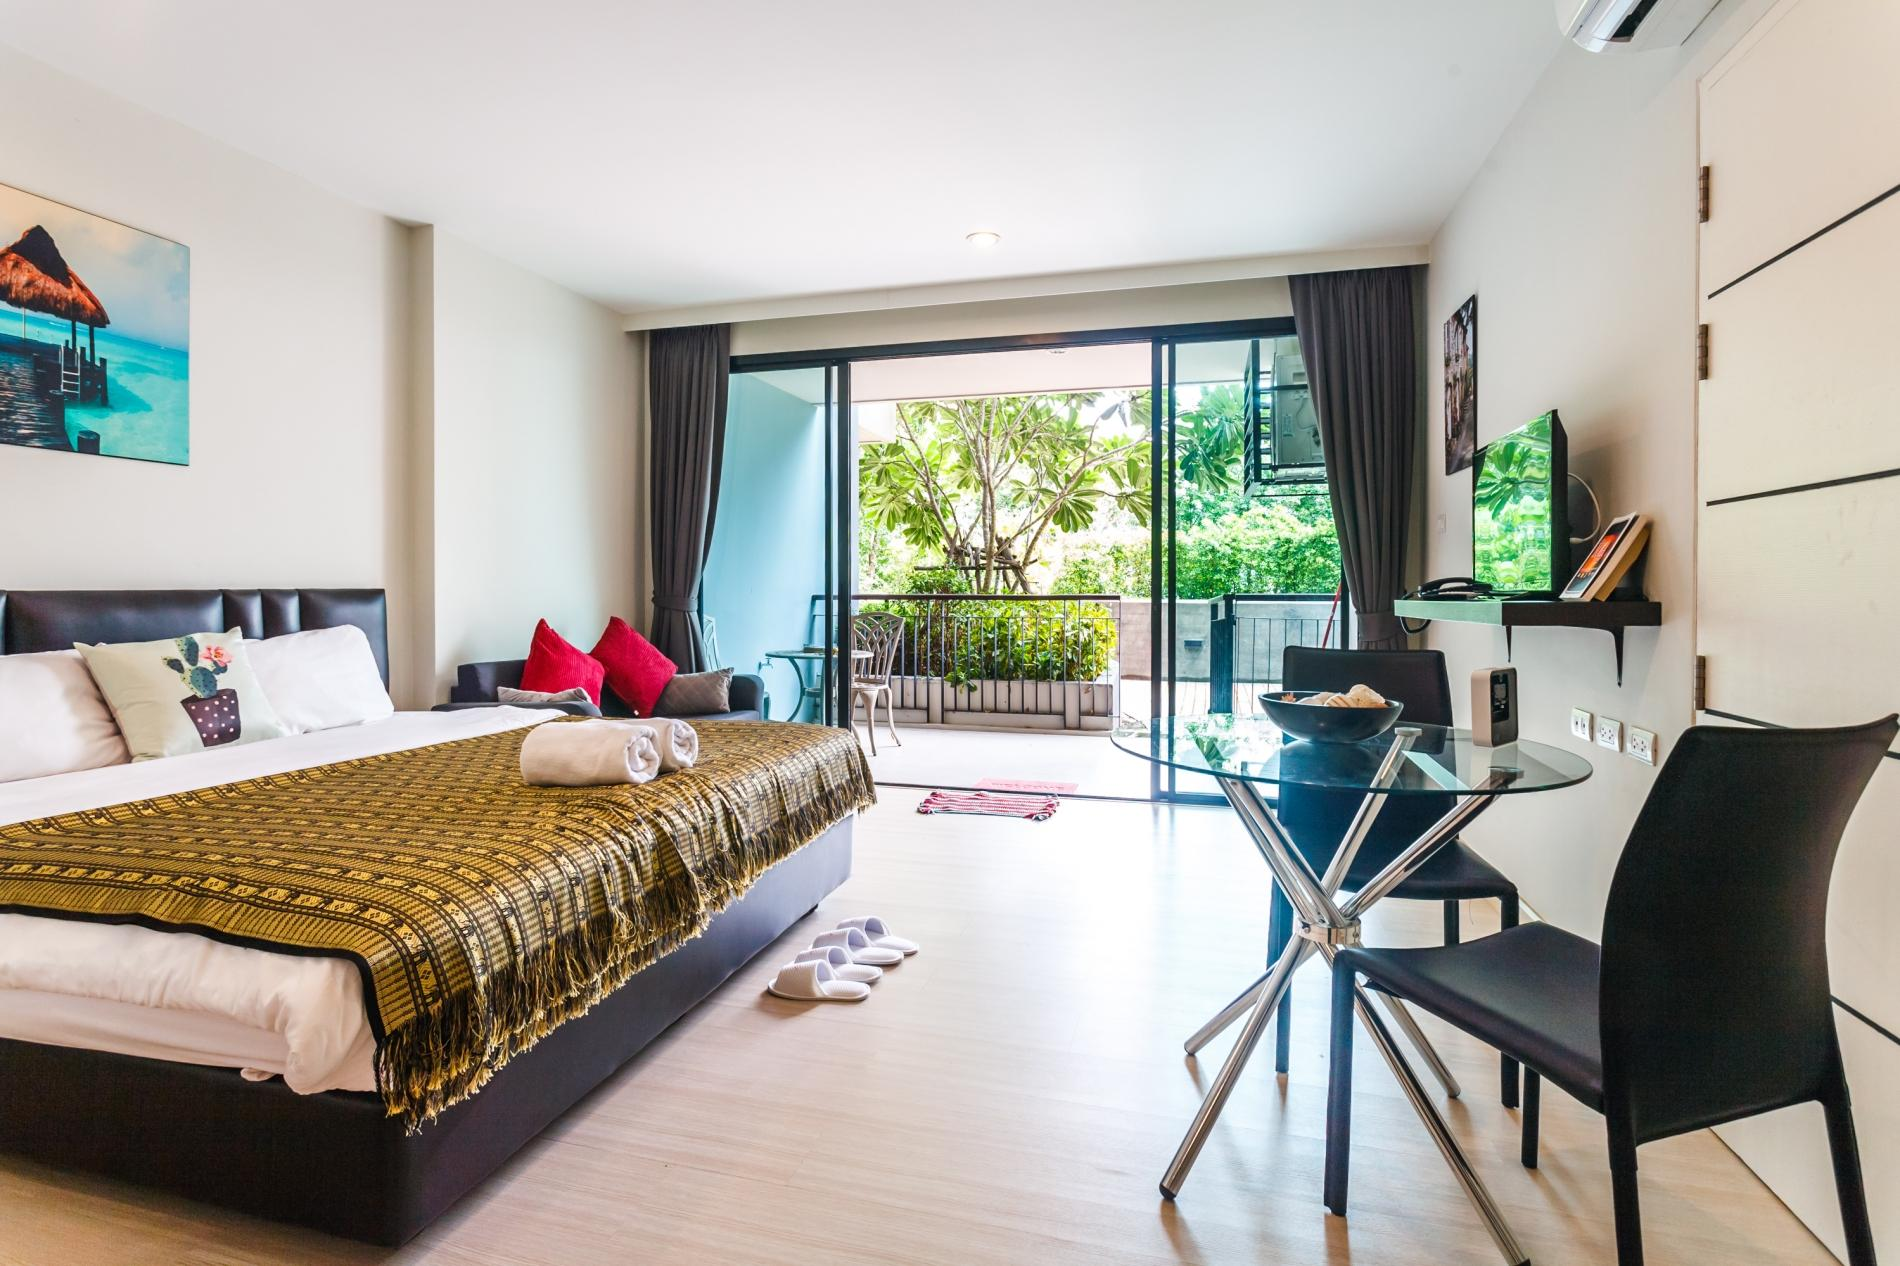 U208 - Patong Studio with kitchen, pool and private patio. photo 13758083